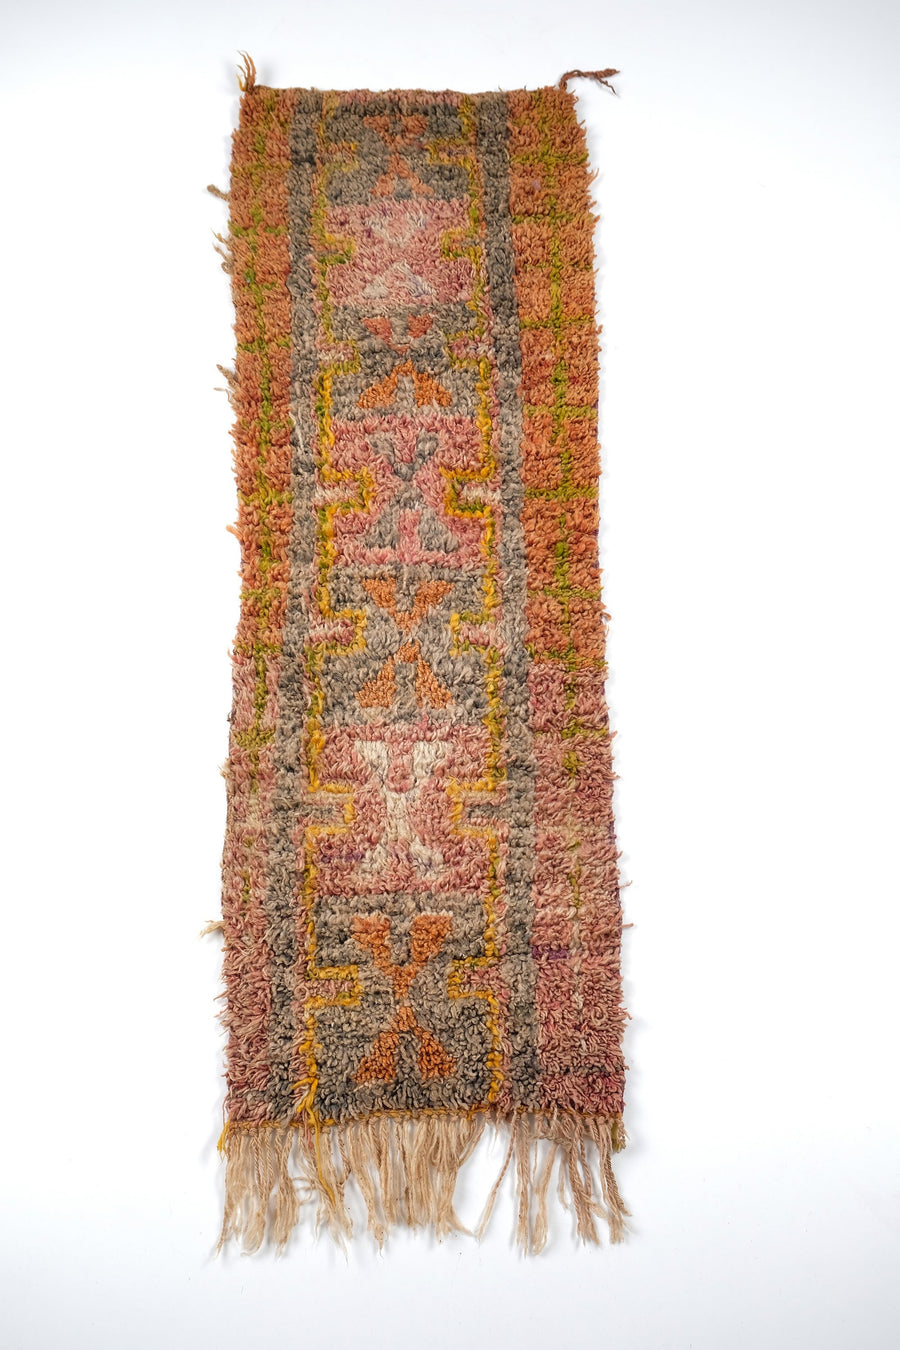 Boucharouite rug   7.87 ft x 3.80 ft - [All moroccan rugs]